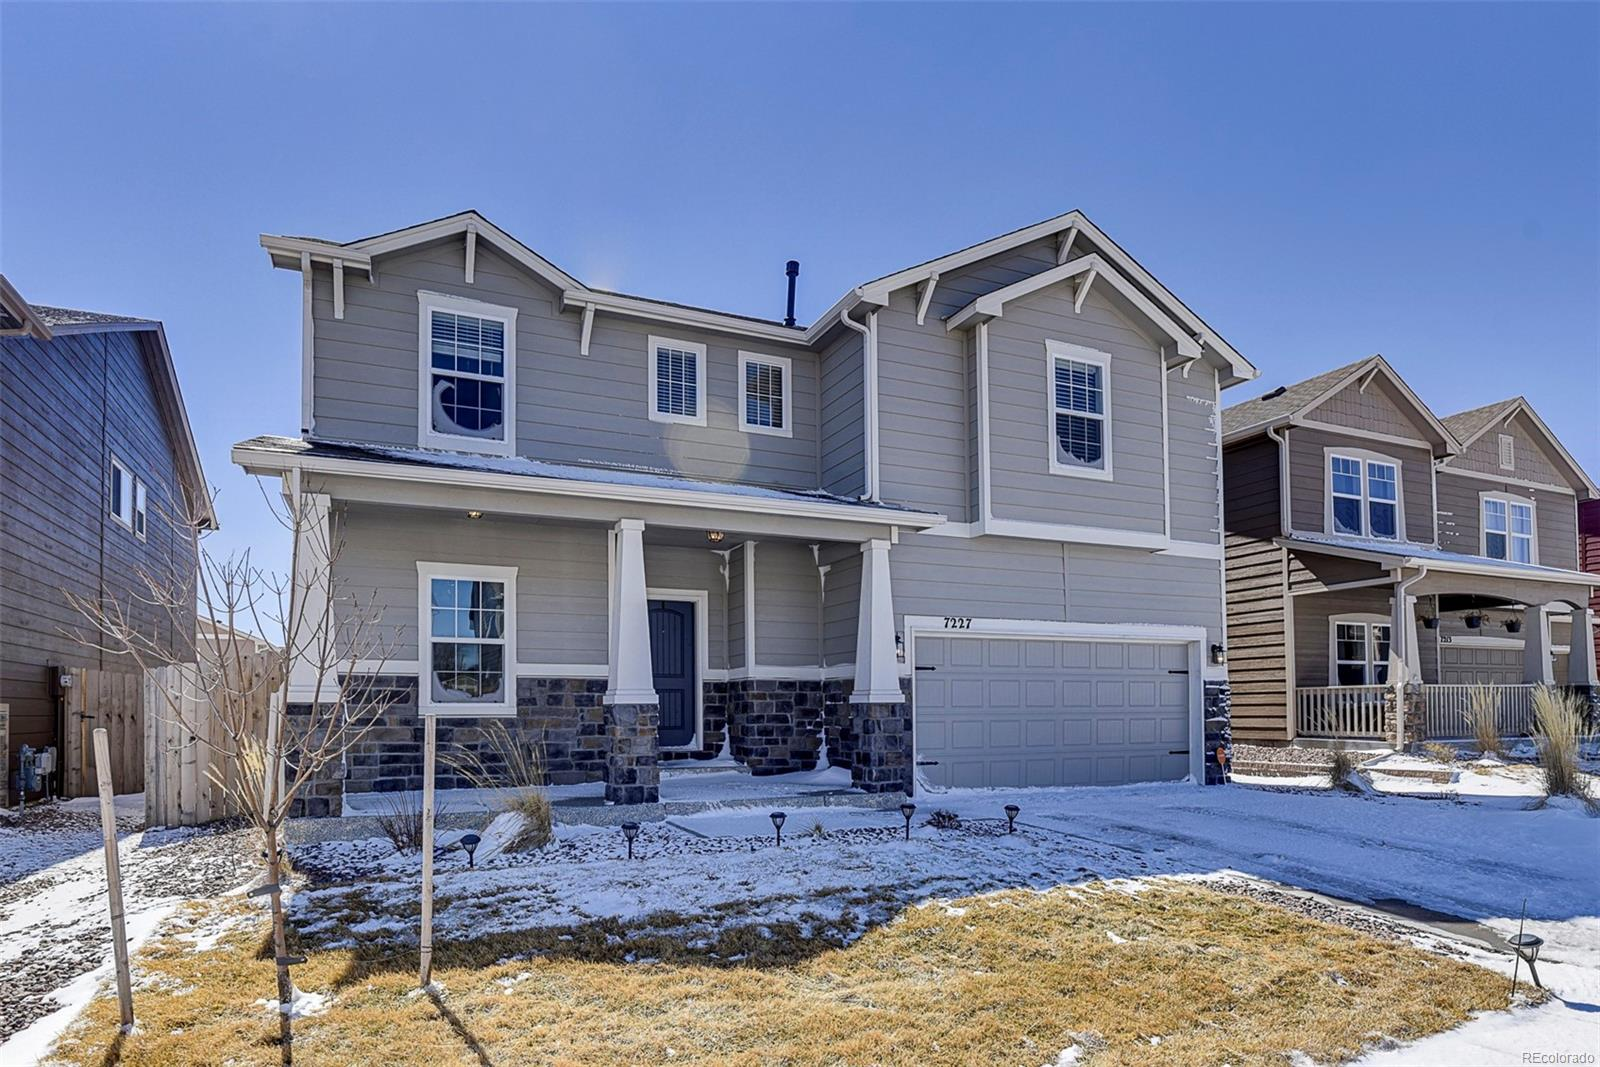 7227 Thorn Brush Way, Colorado Springs, CO 80923 - Colorado Springs, CO real estate listing